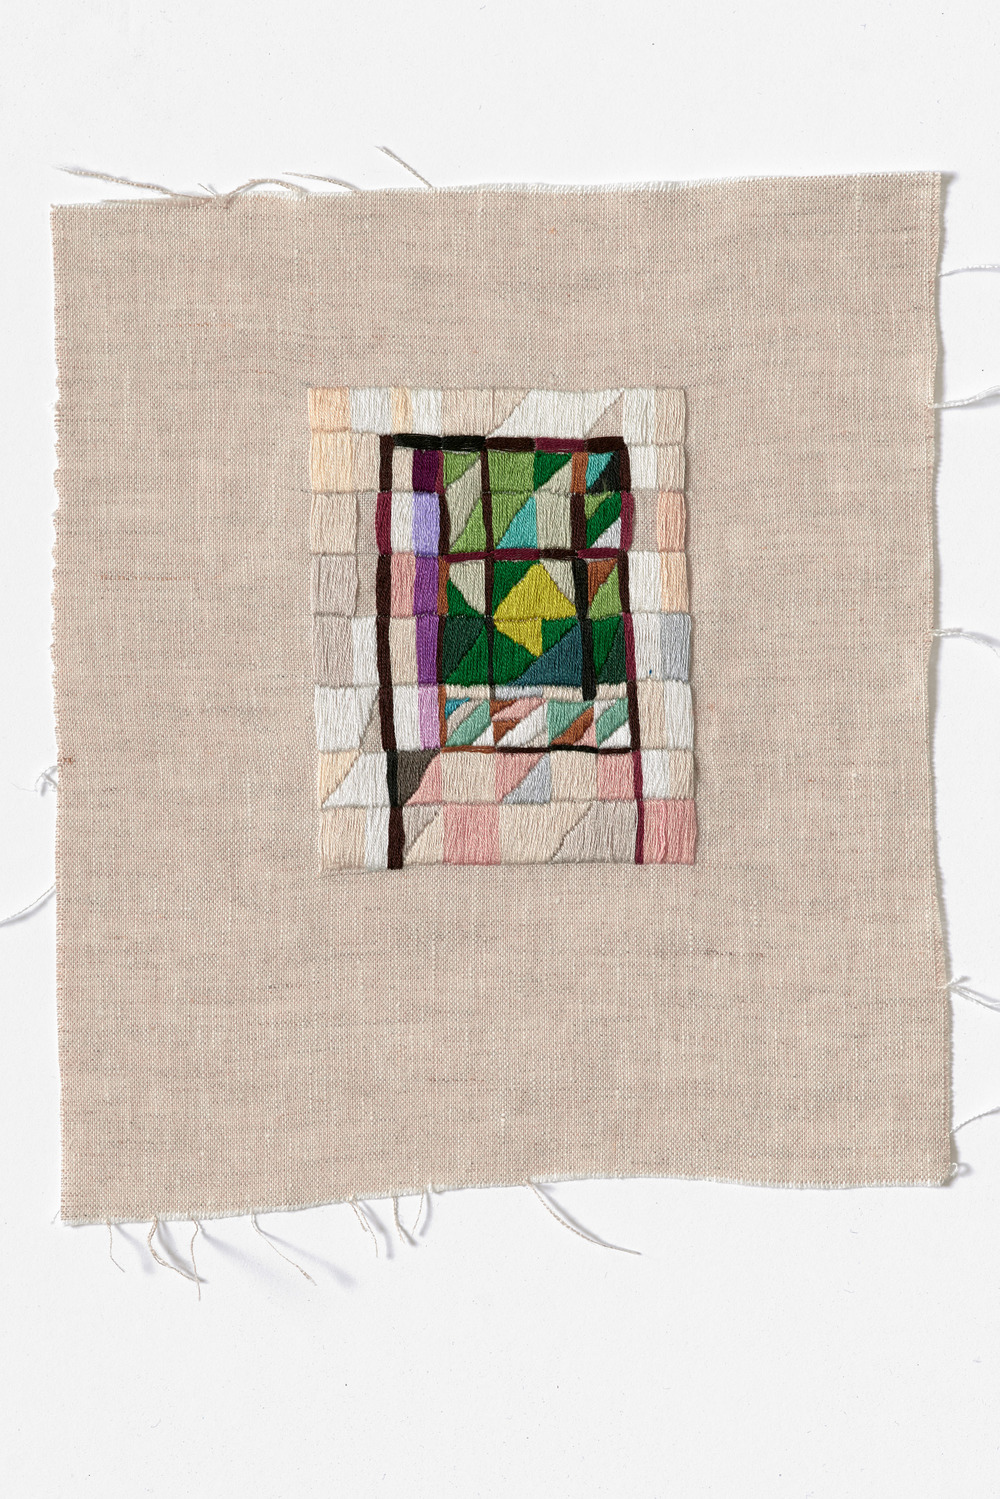 Corridor view, Monty 2015 Cotton thread on linen 24.5 x 28cm